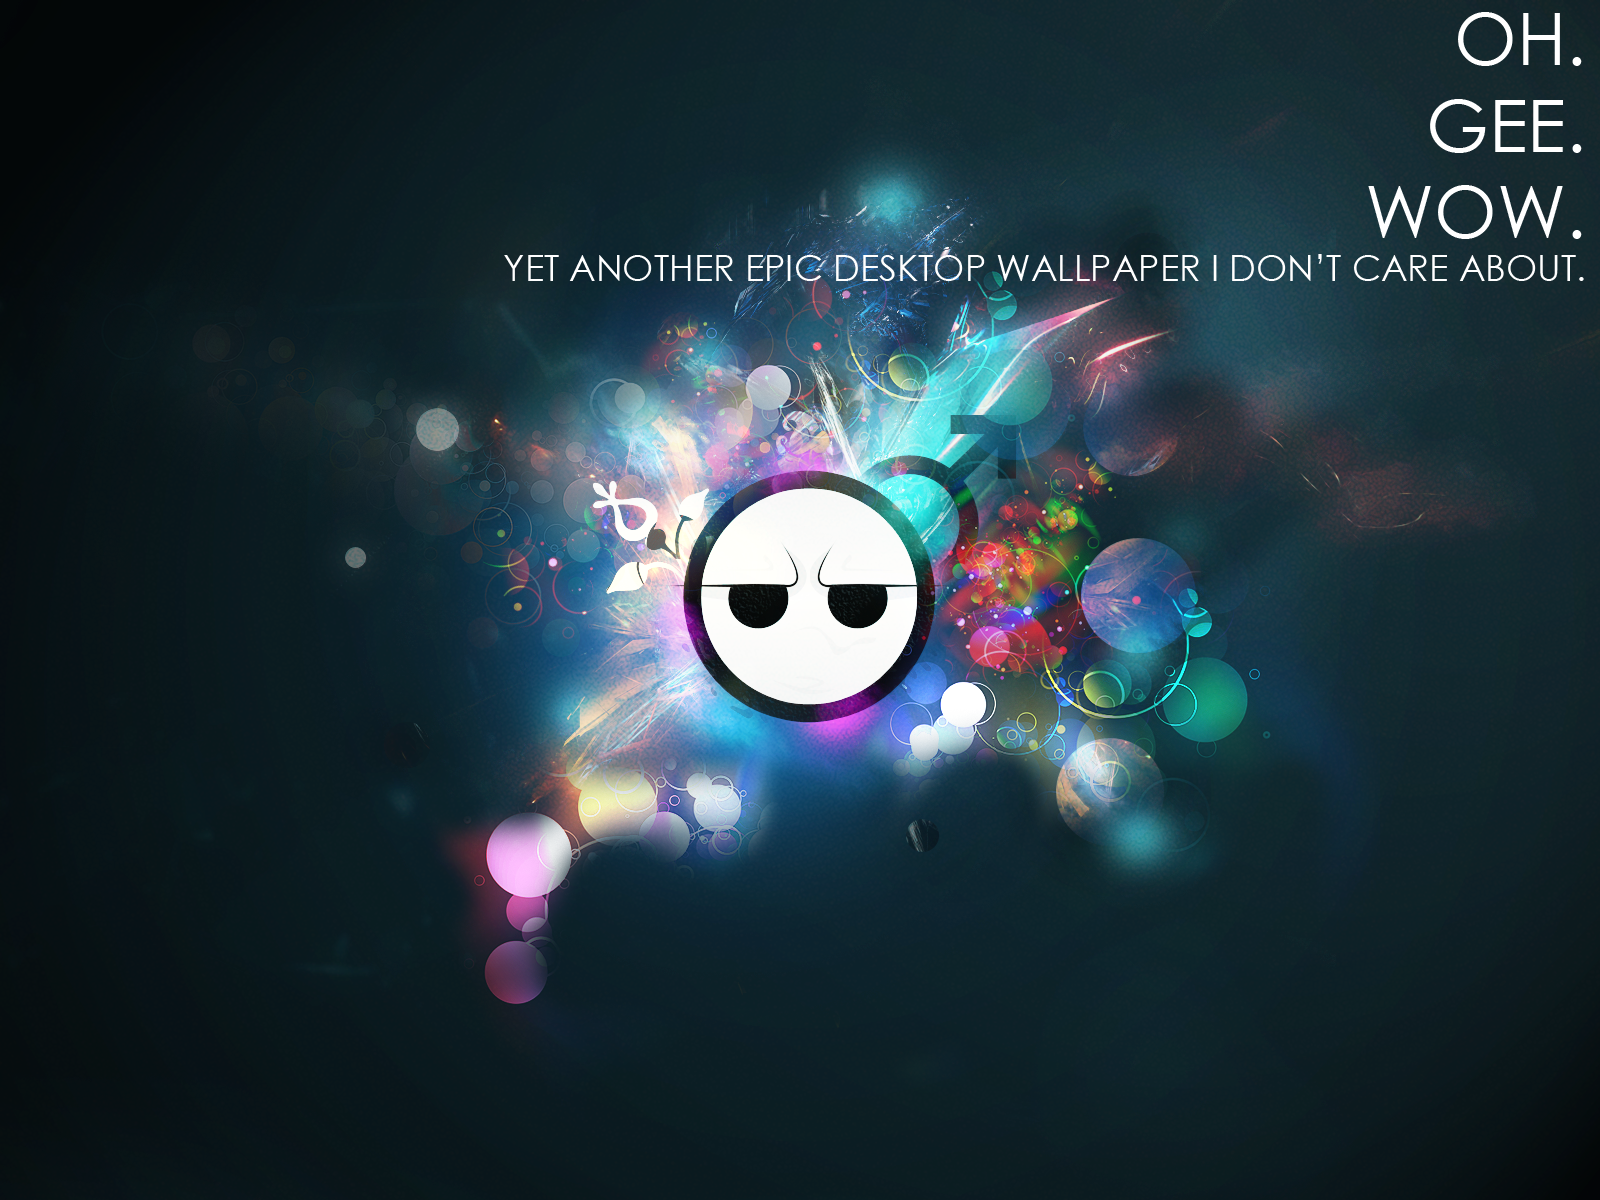 Funny Wallpaper And Background Image